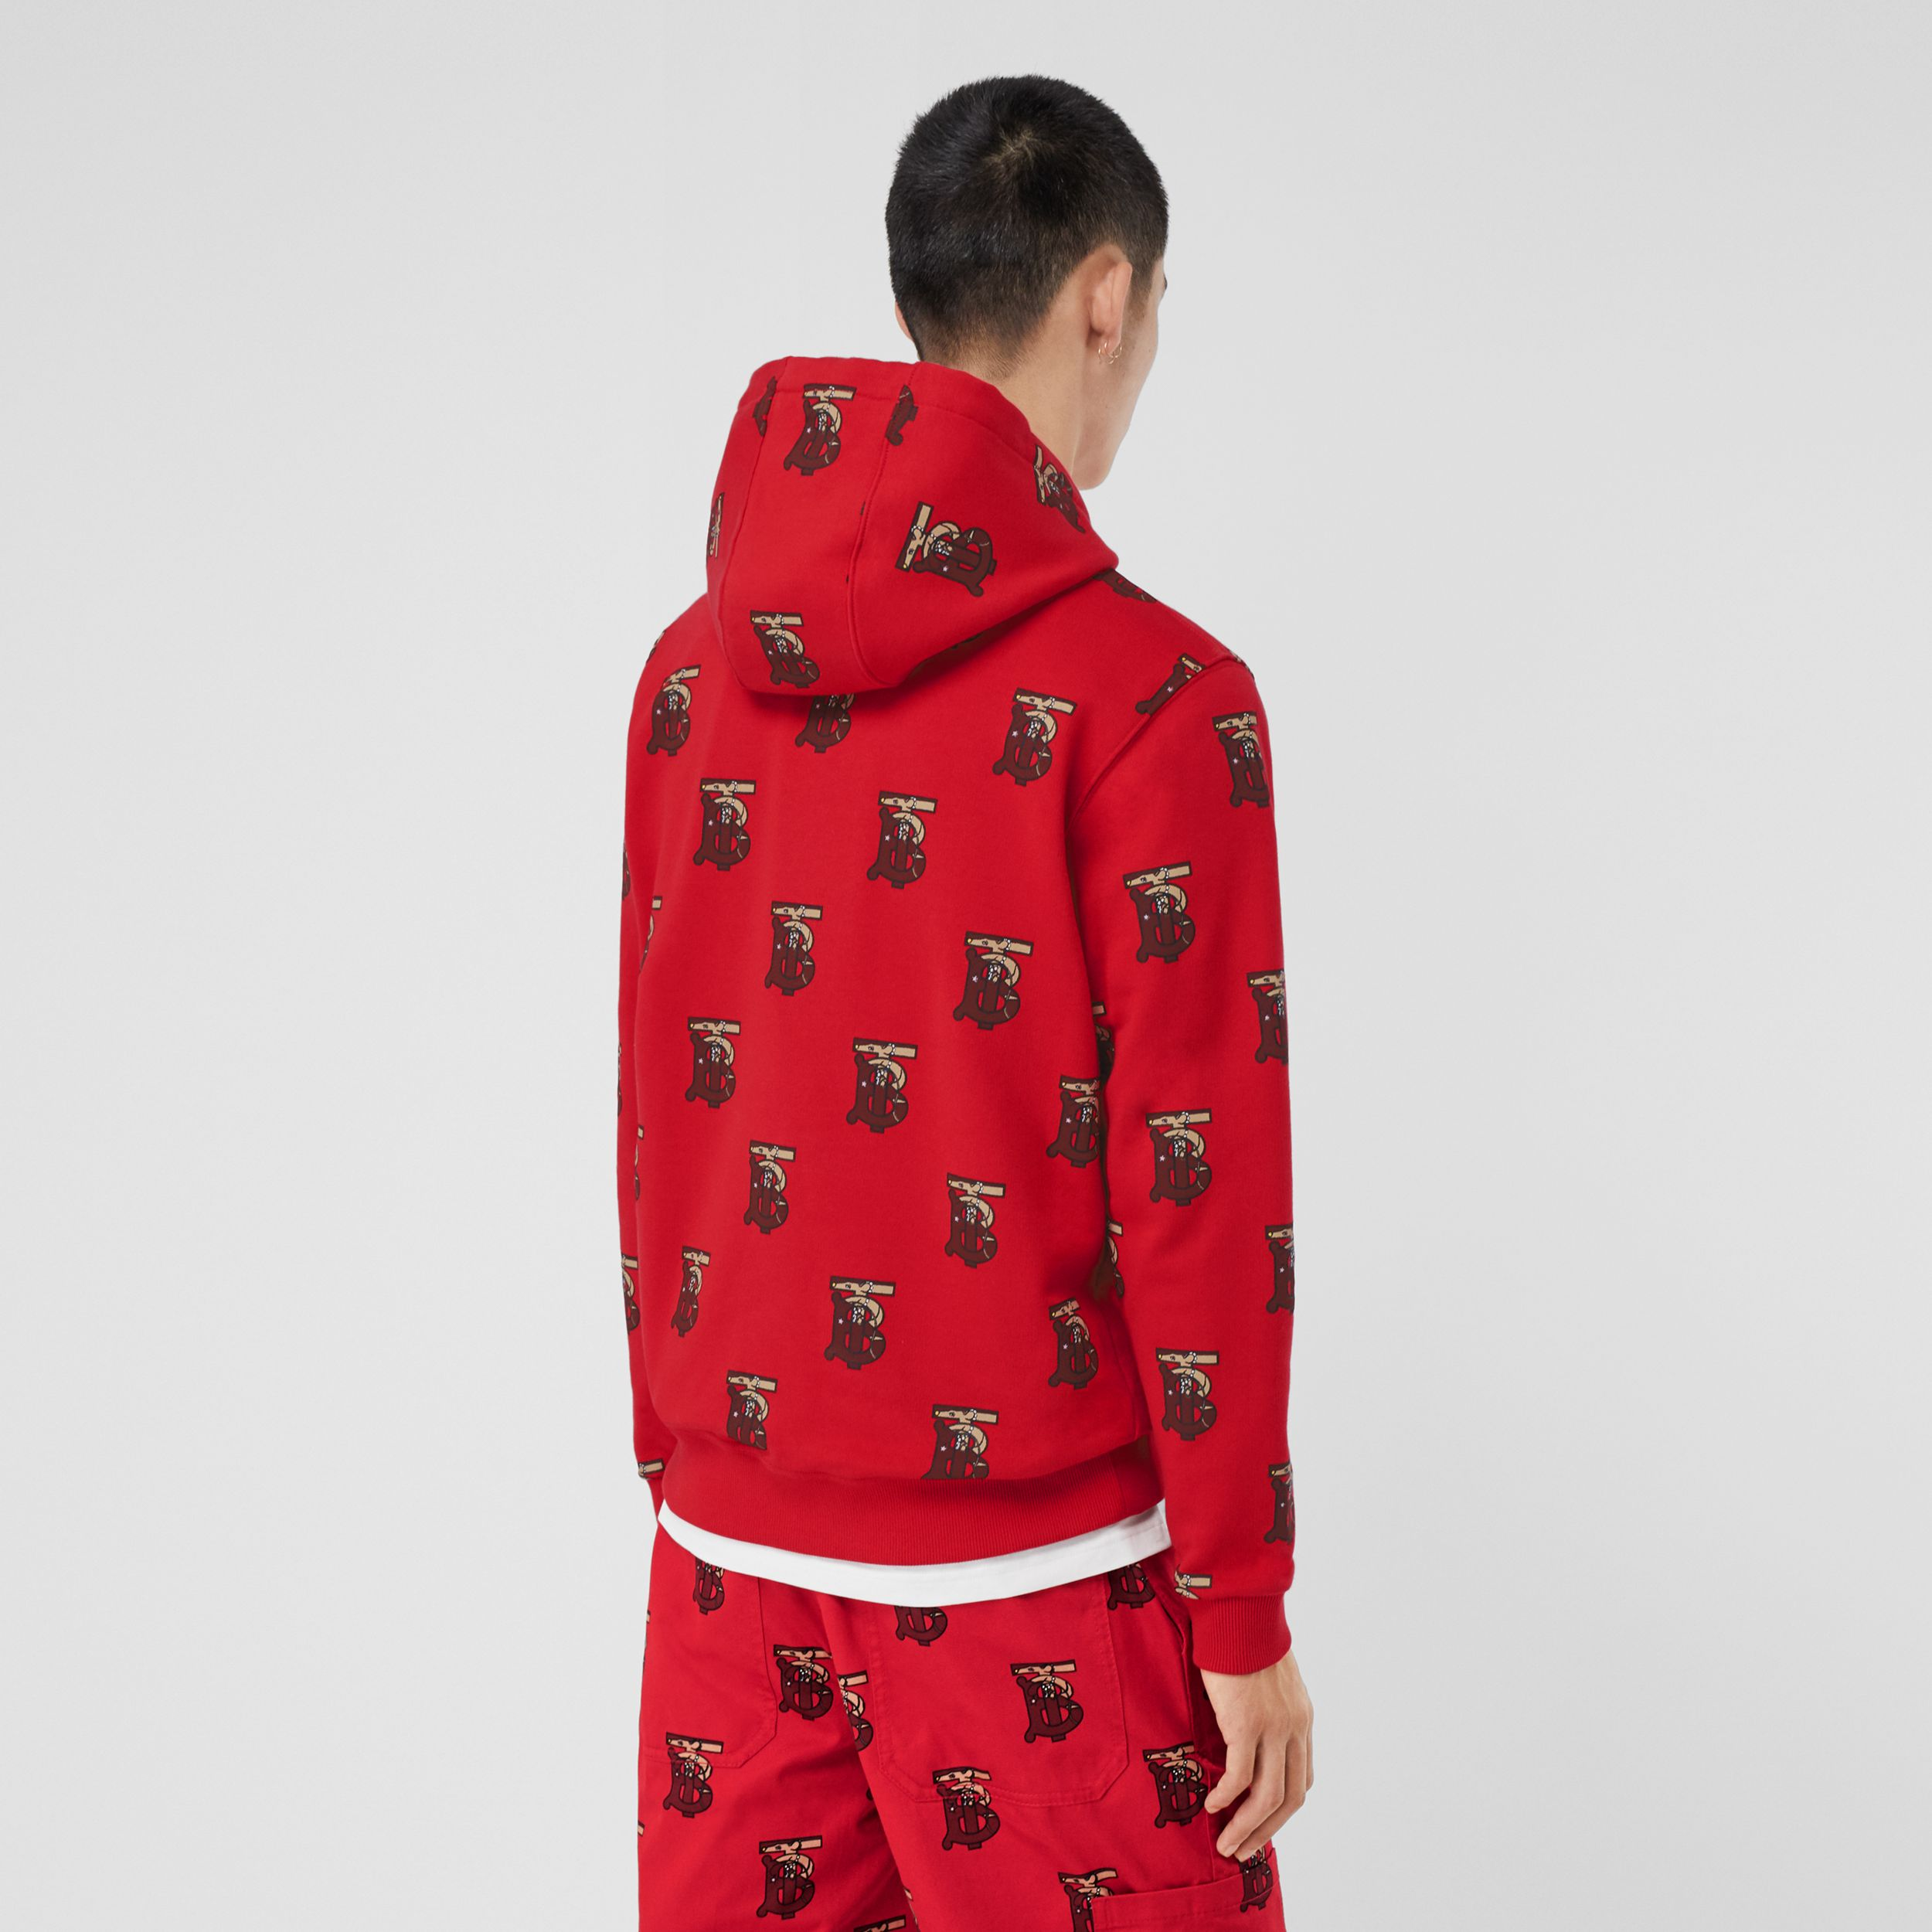 Monogram Motif Cotton Oversized Hoodie in Bright Red - Men | Burberry Canada - 3